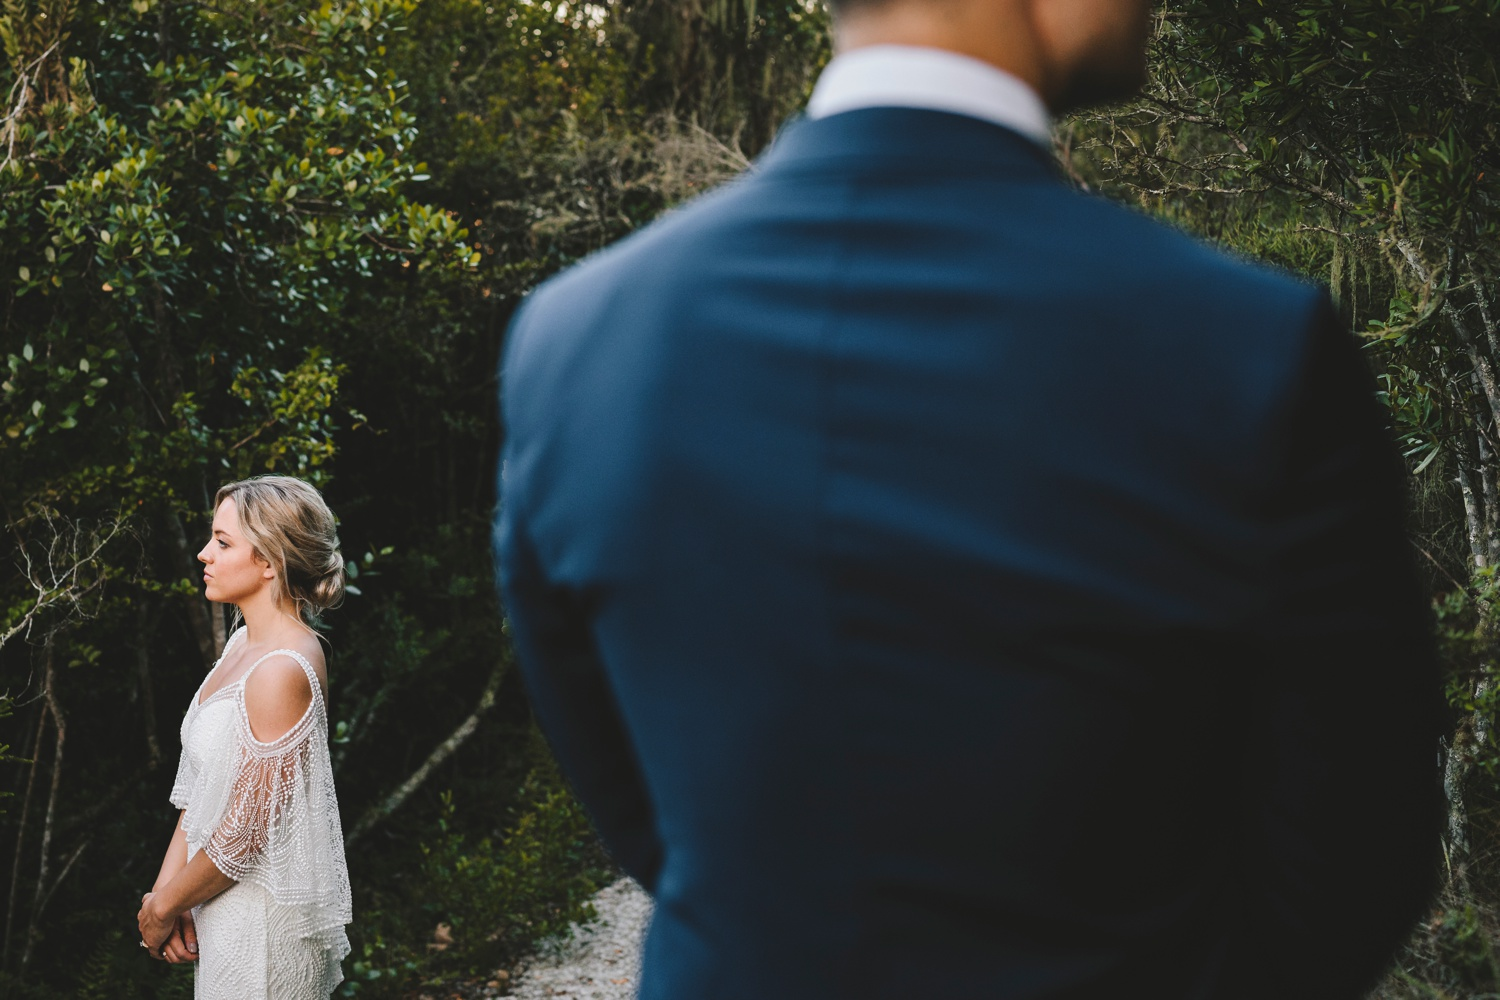 charlie_ray_photography_runaway_romance_elopement_emily_moon_plett_simple_boho_wedding_south_africa_bohemium_0096.jpg